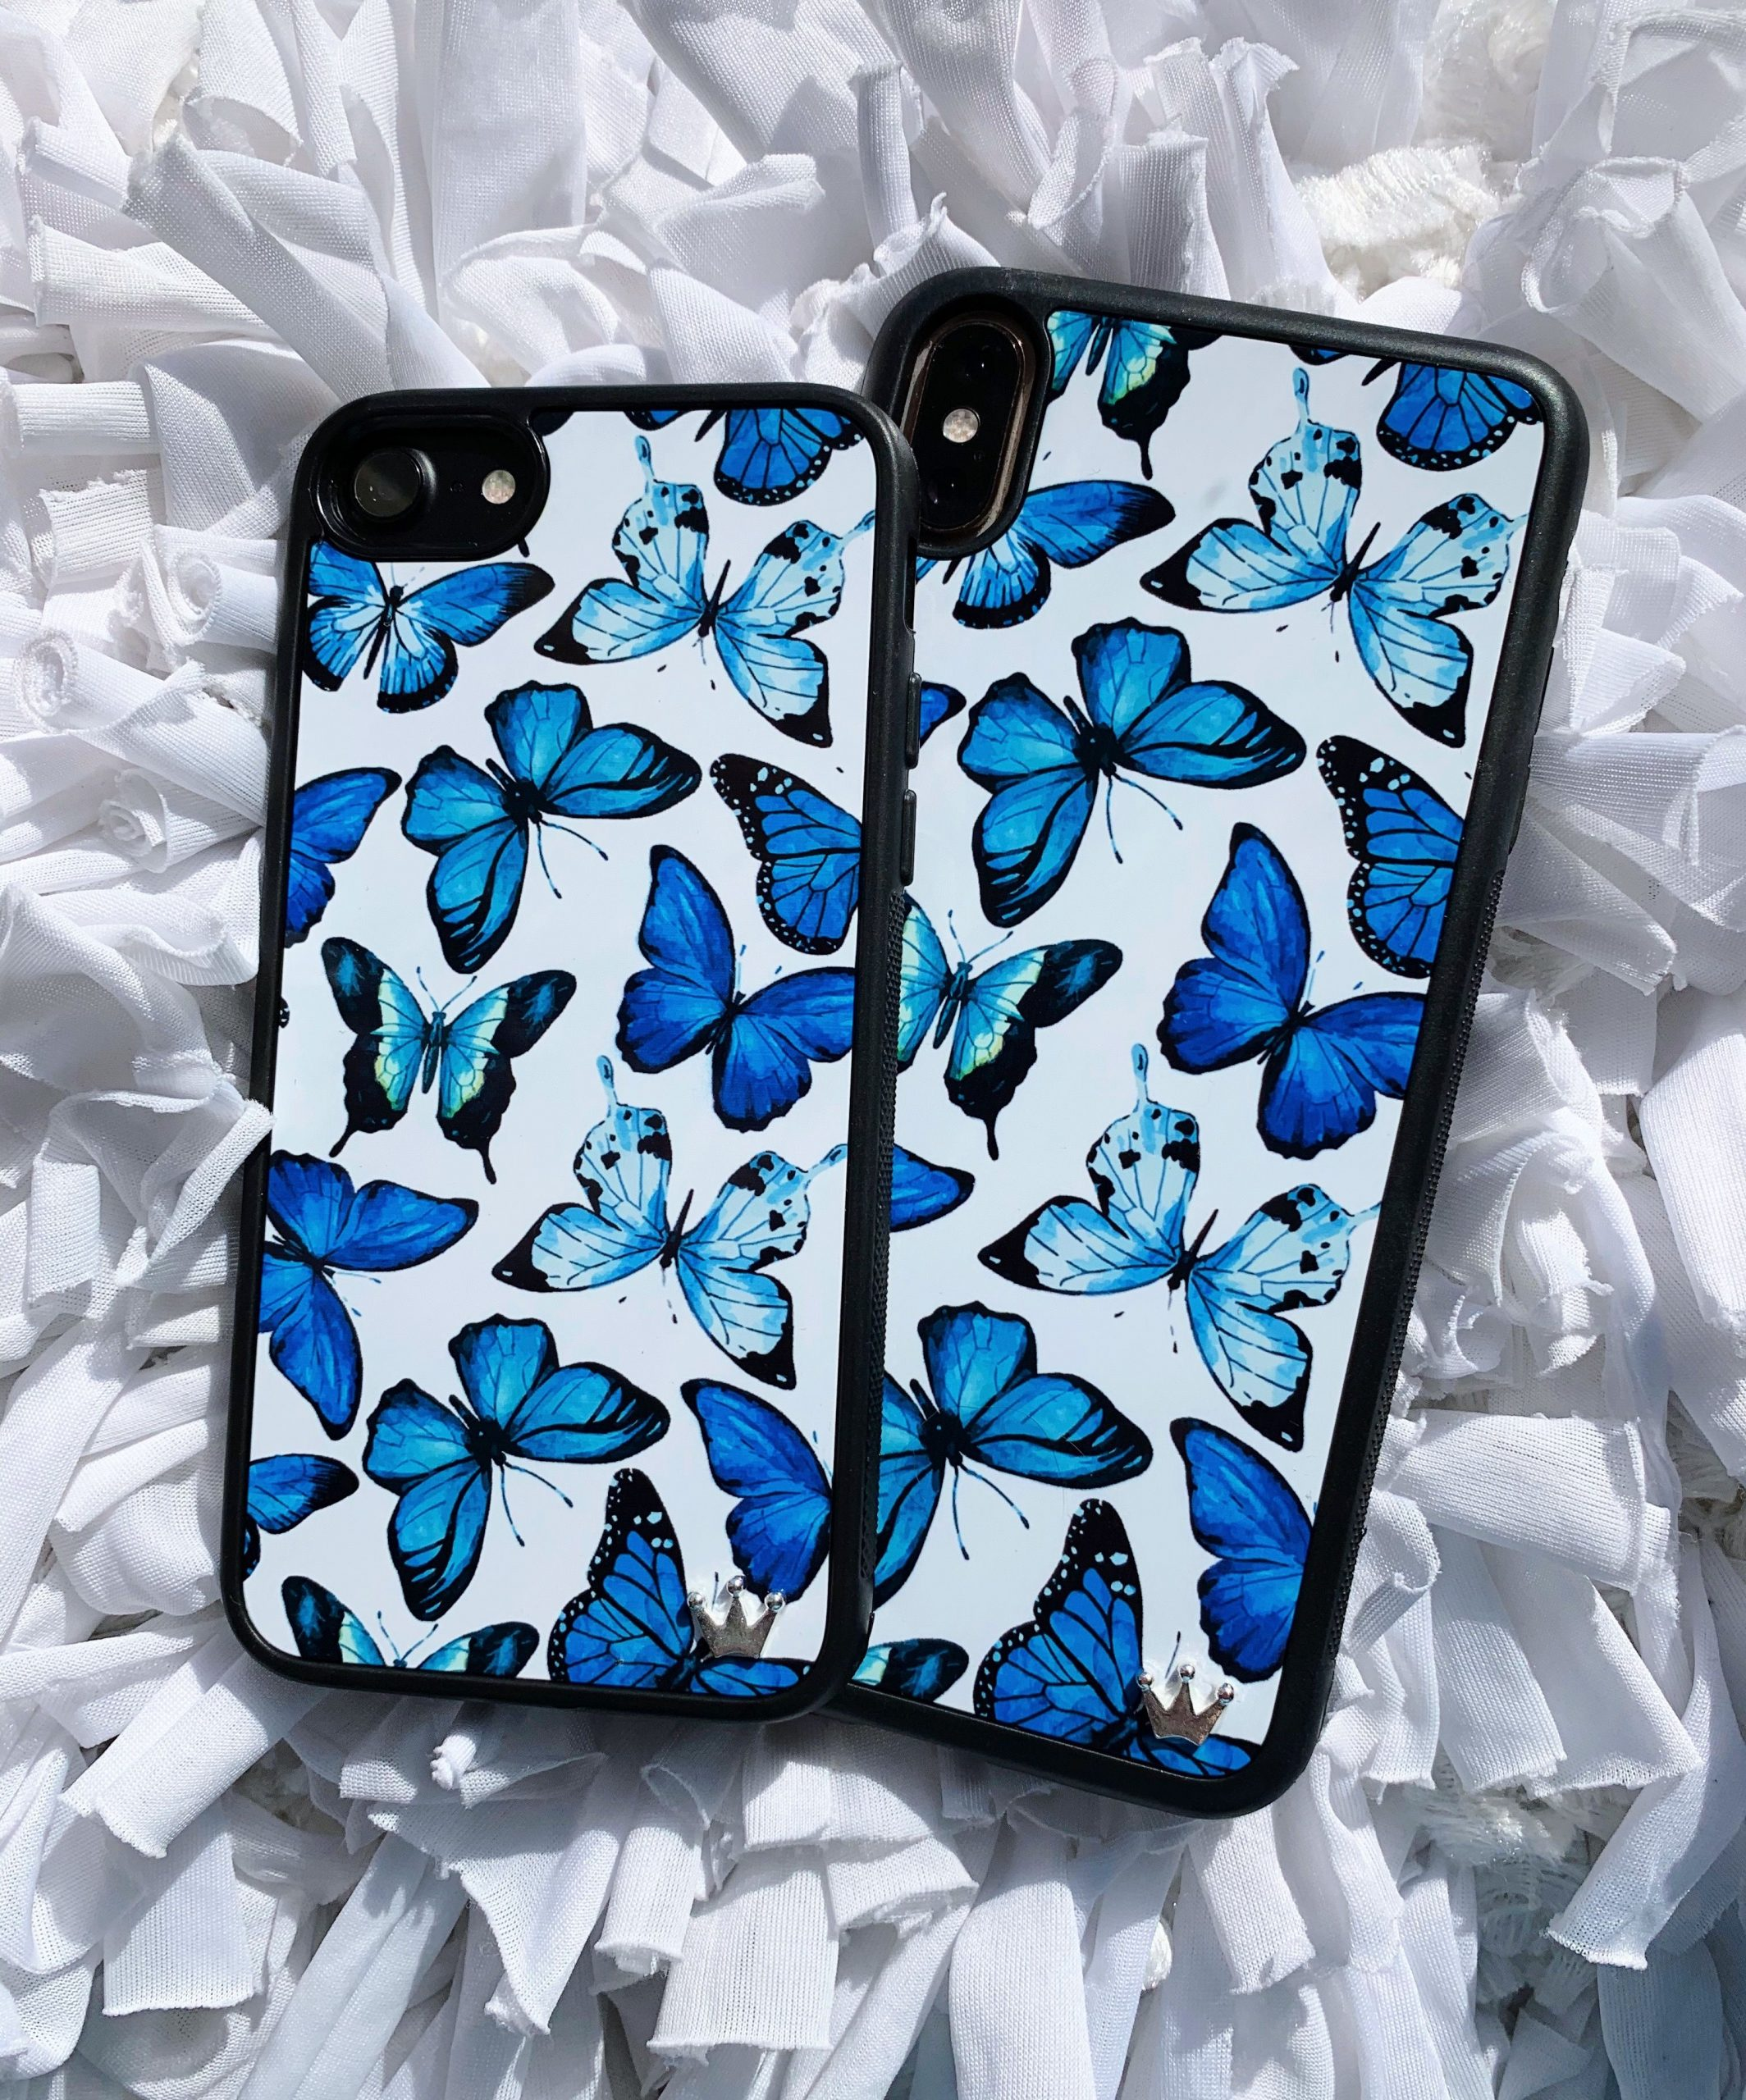 Decorate the phone with elegant cases